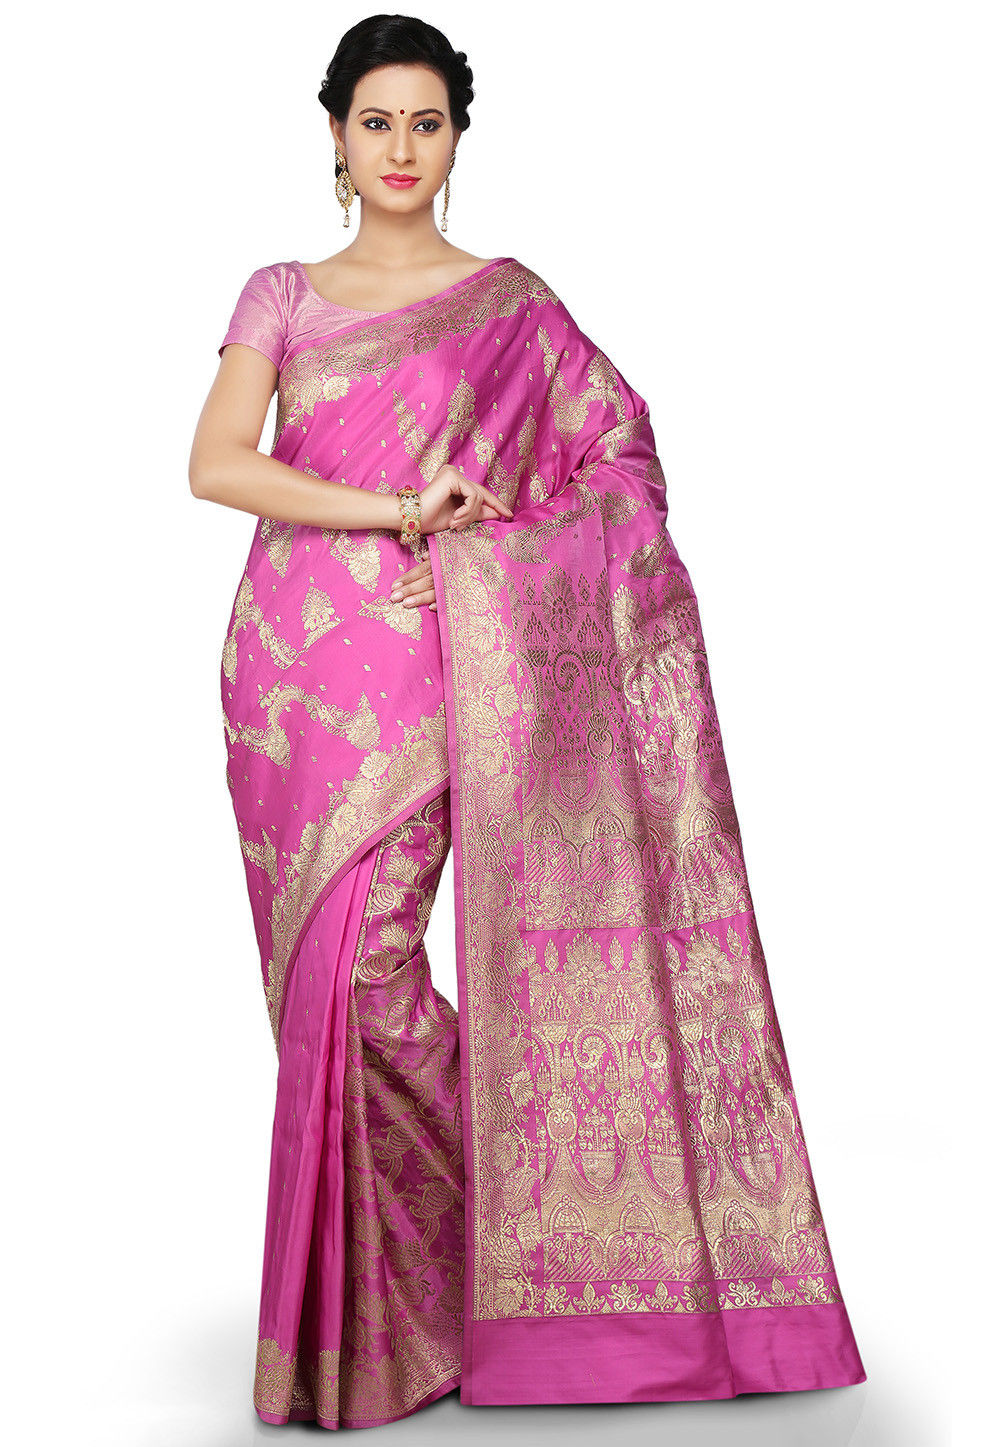 Banarasi Pure Silk Handloom Saree in Pink